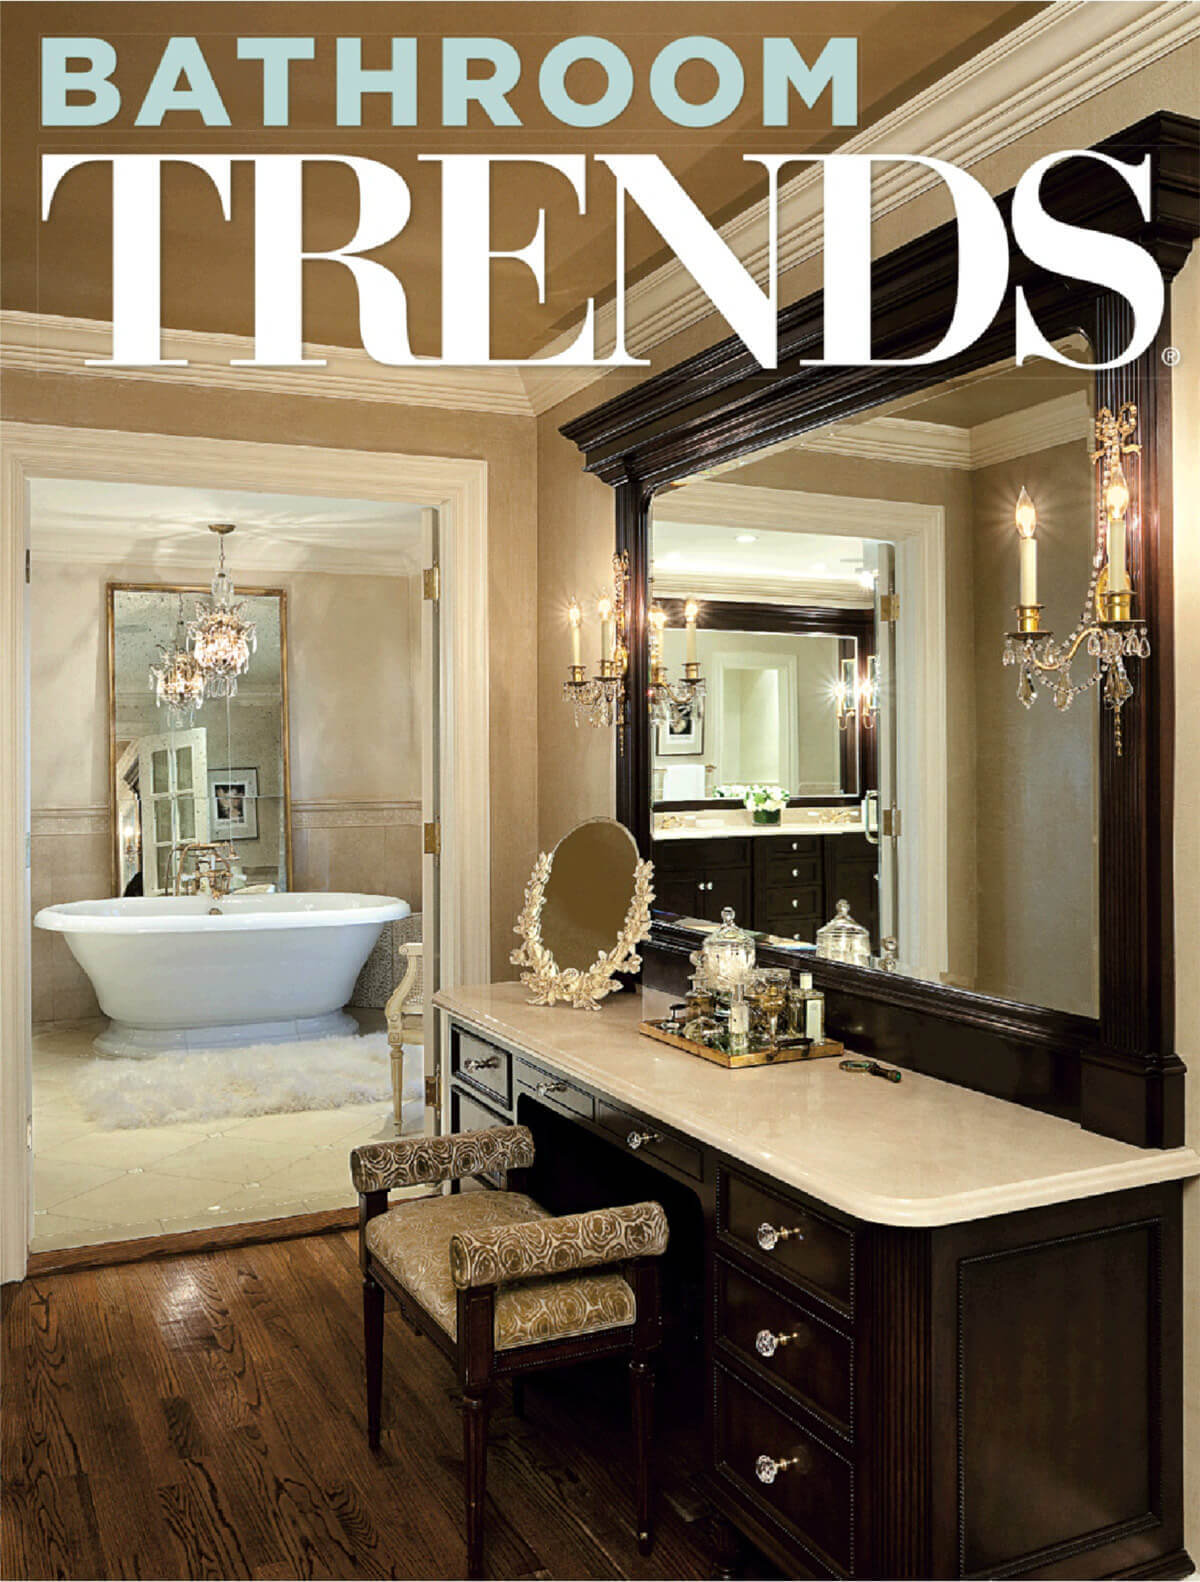 Bathroom trends magazine home design Trends magazine home design ideas